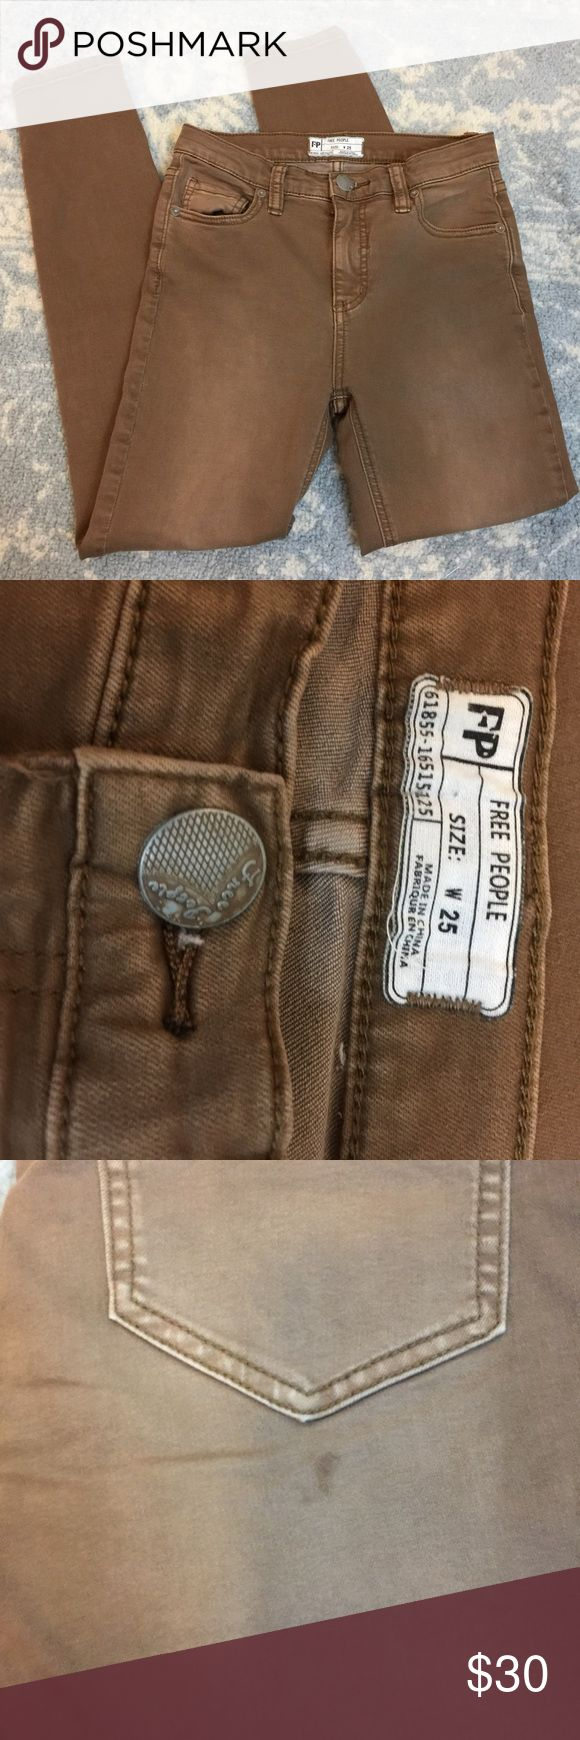 Free People Brown Skinny Jeans Free People Brown jeans with a skinny bottom hem and have a stain on the back pocket that might be removable...super cute and size 25 Free People Jeans Skinny